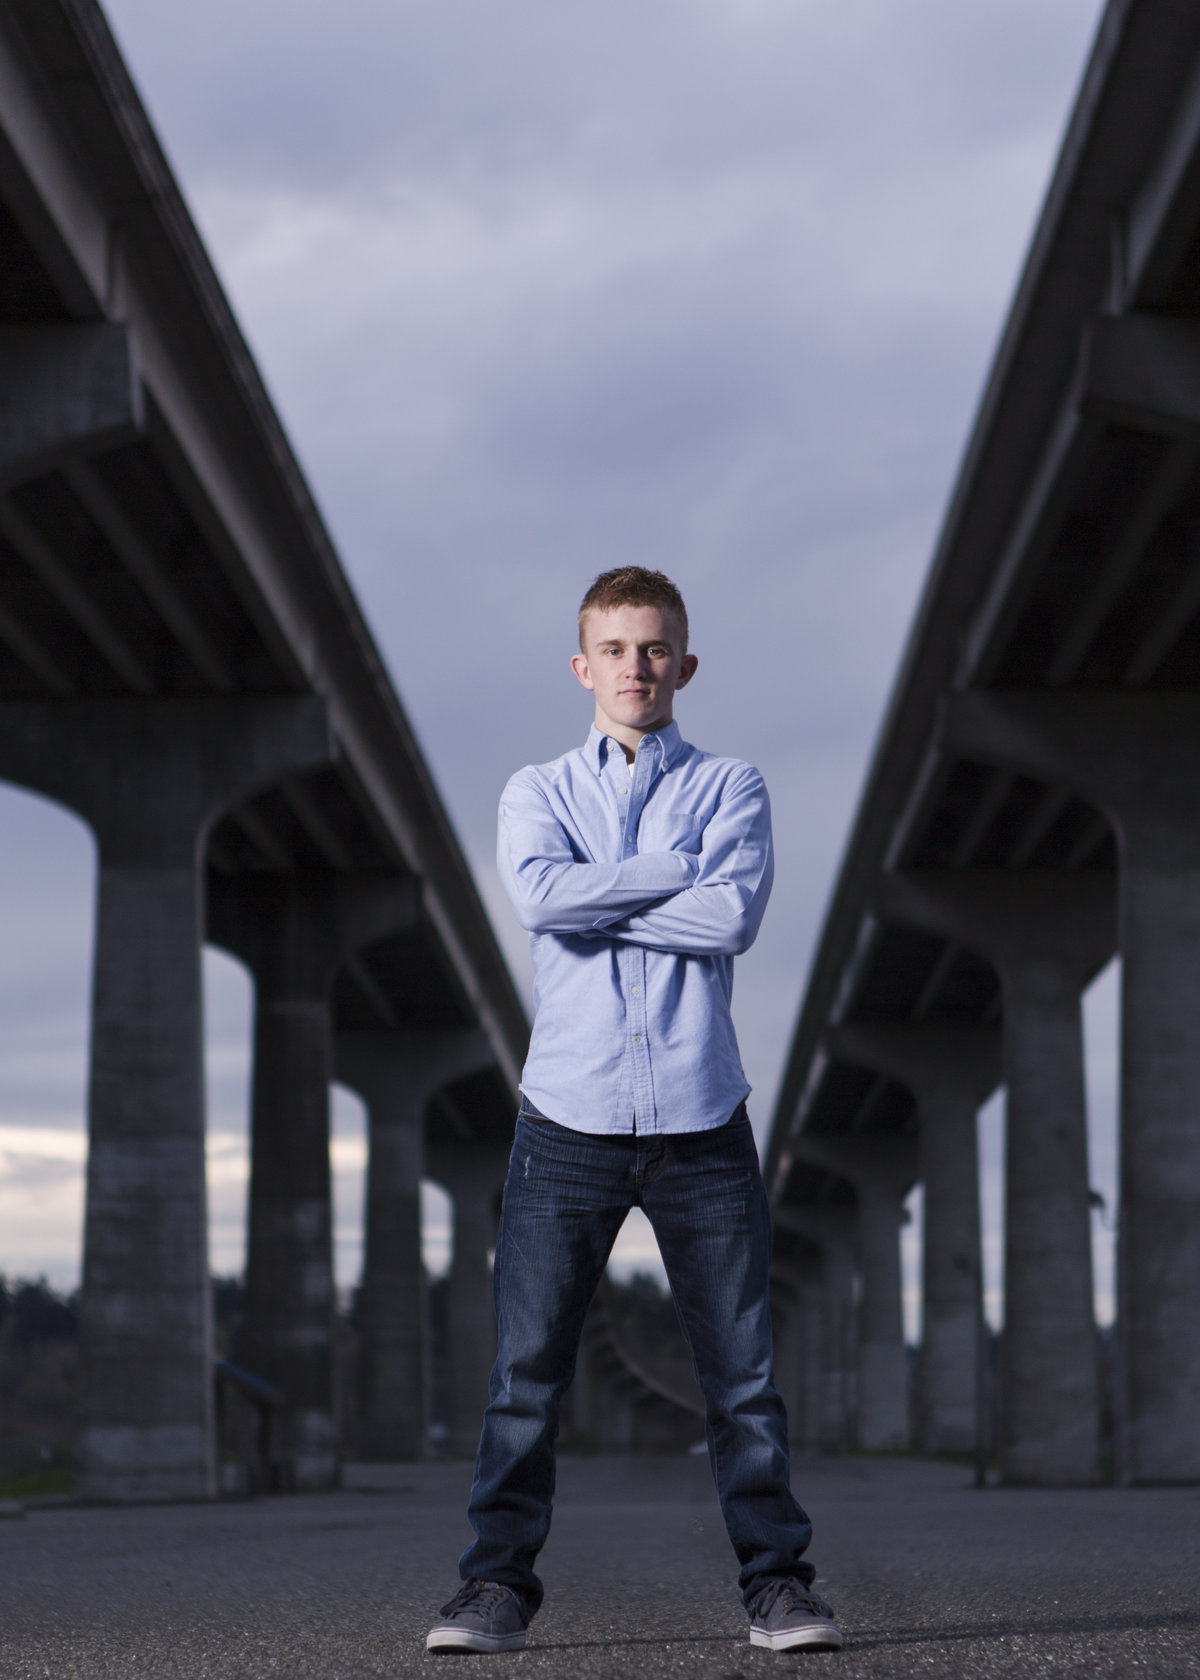 seattle photography anacortes bridges high school senior photo